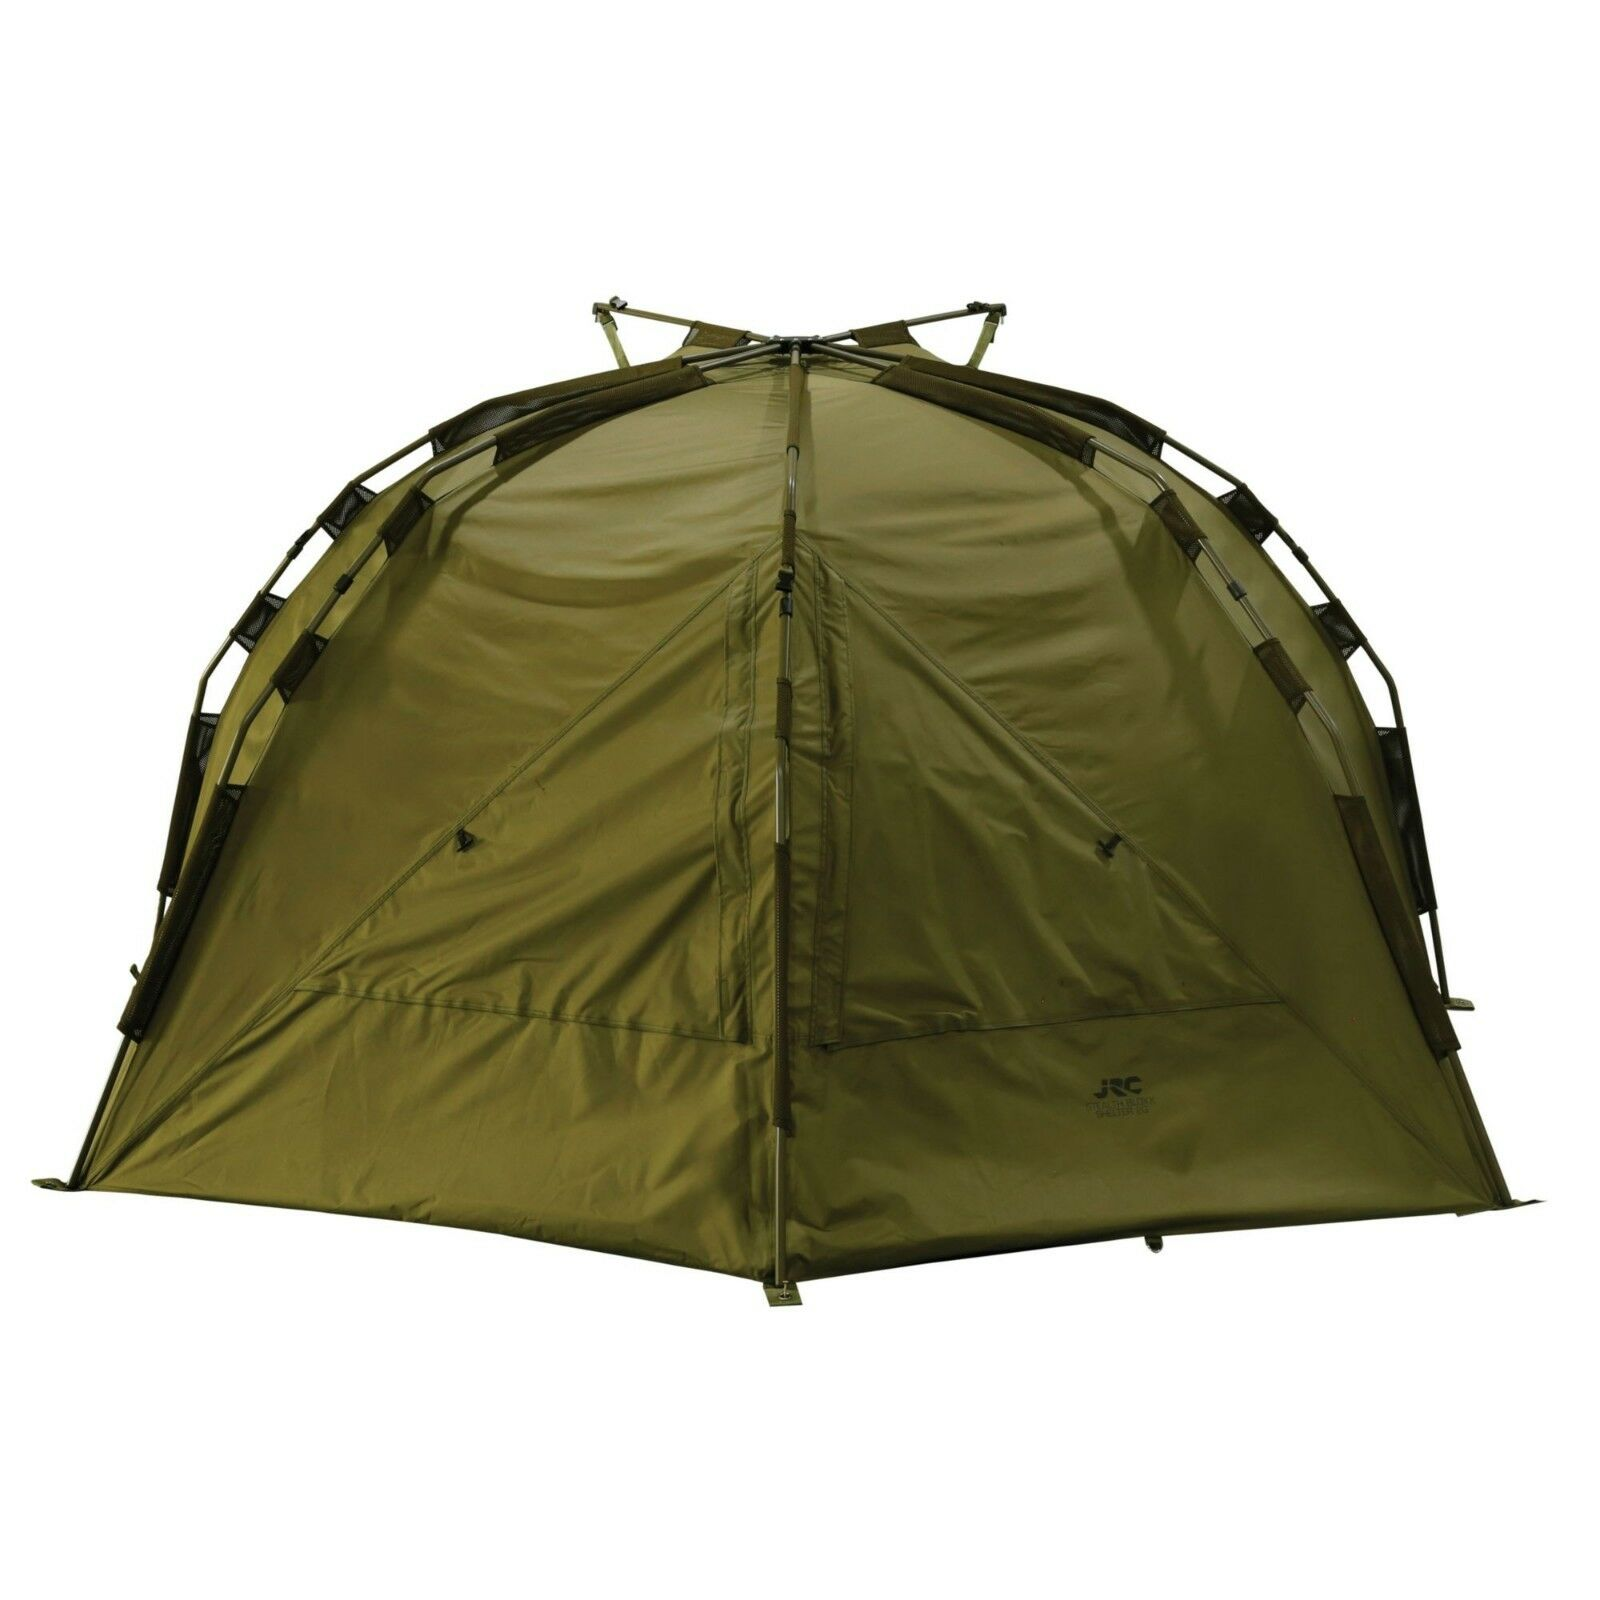 JRC Stealth Bloxx 2G Fishing Shelter NEW Carp Fishing 2G Brolly - 1485822 1aad12